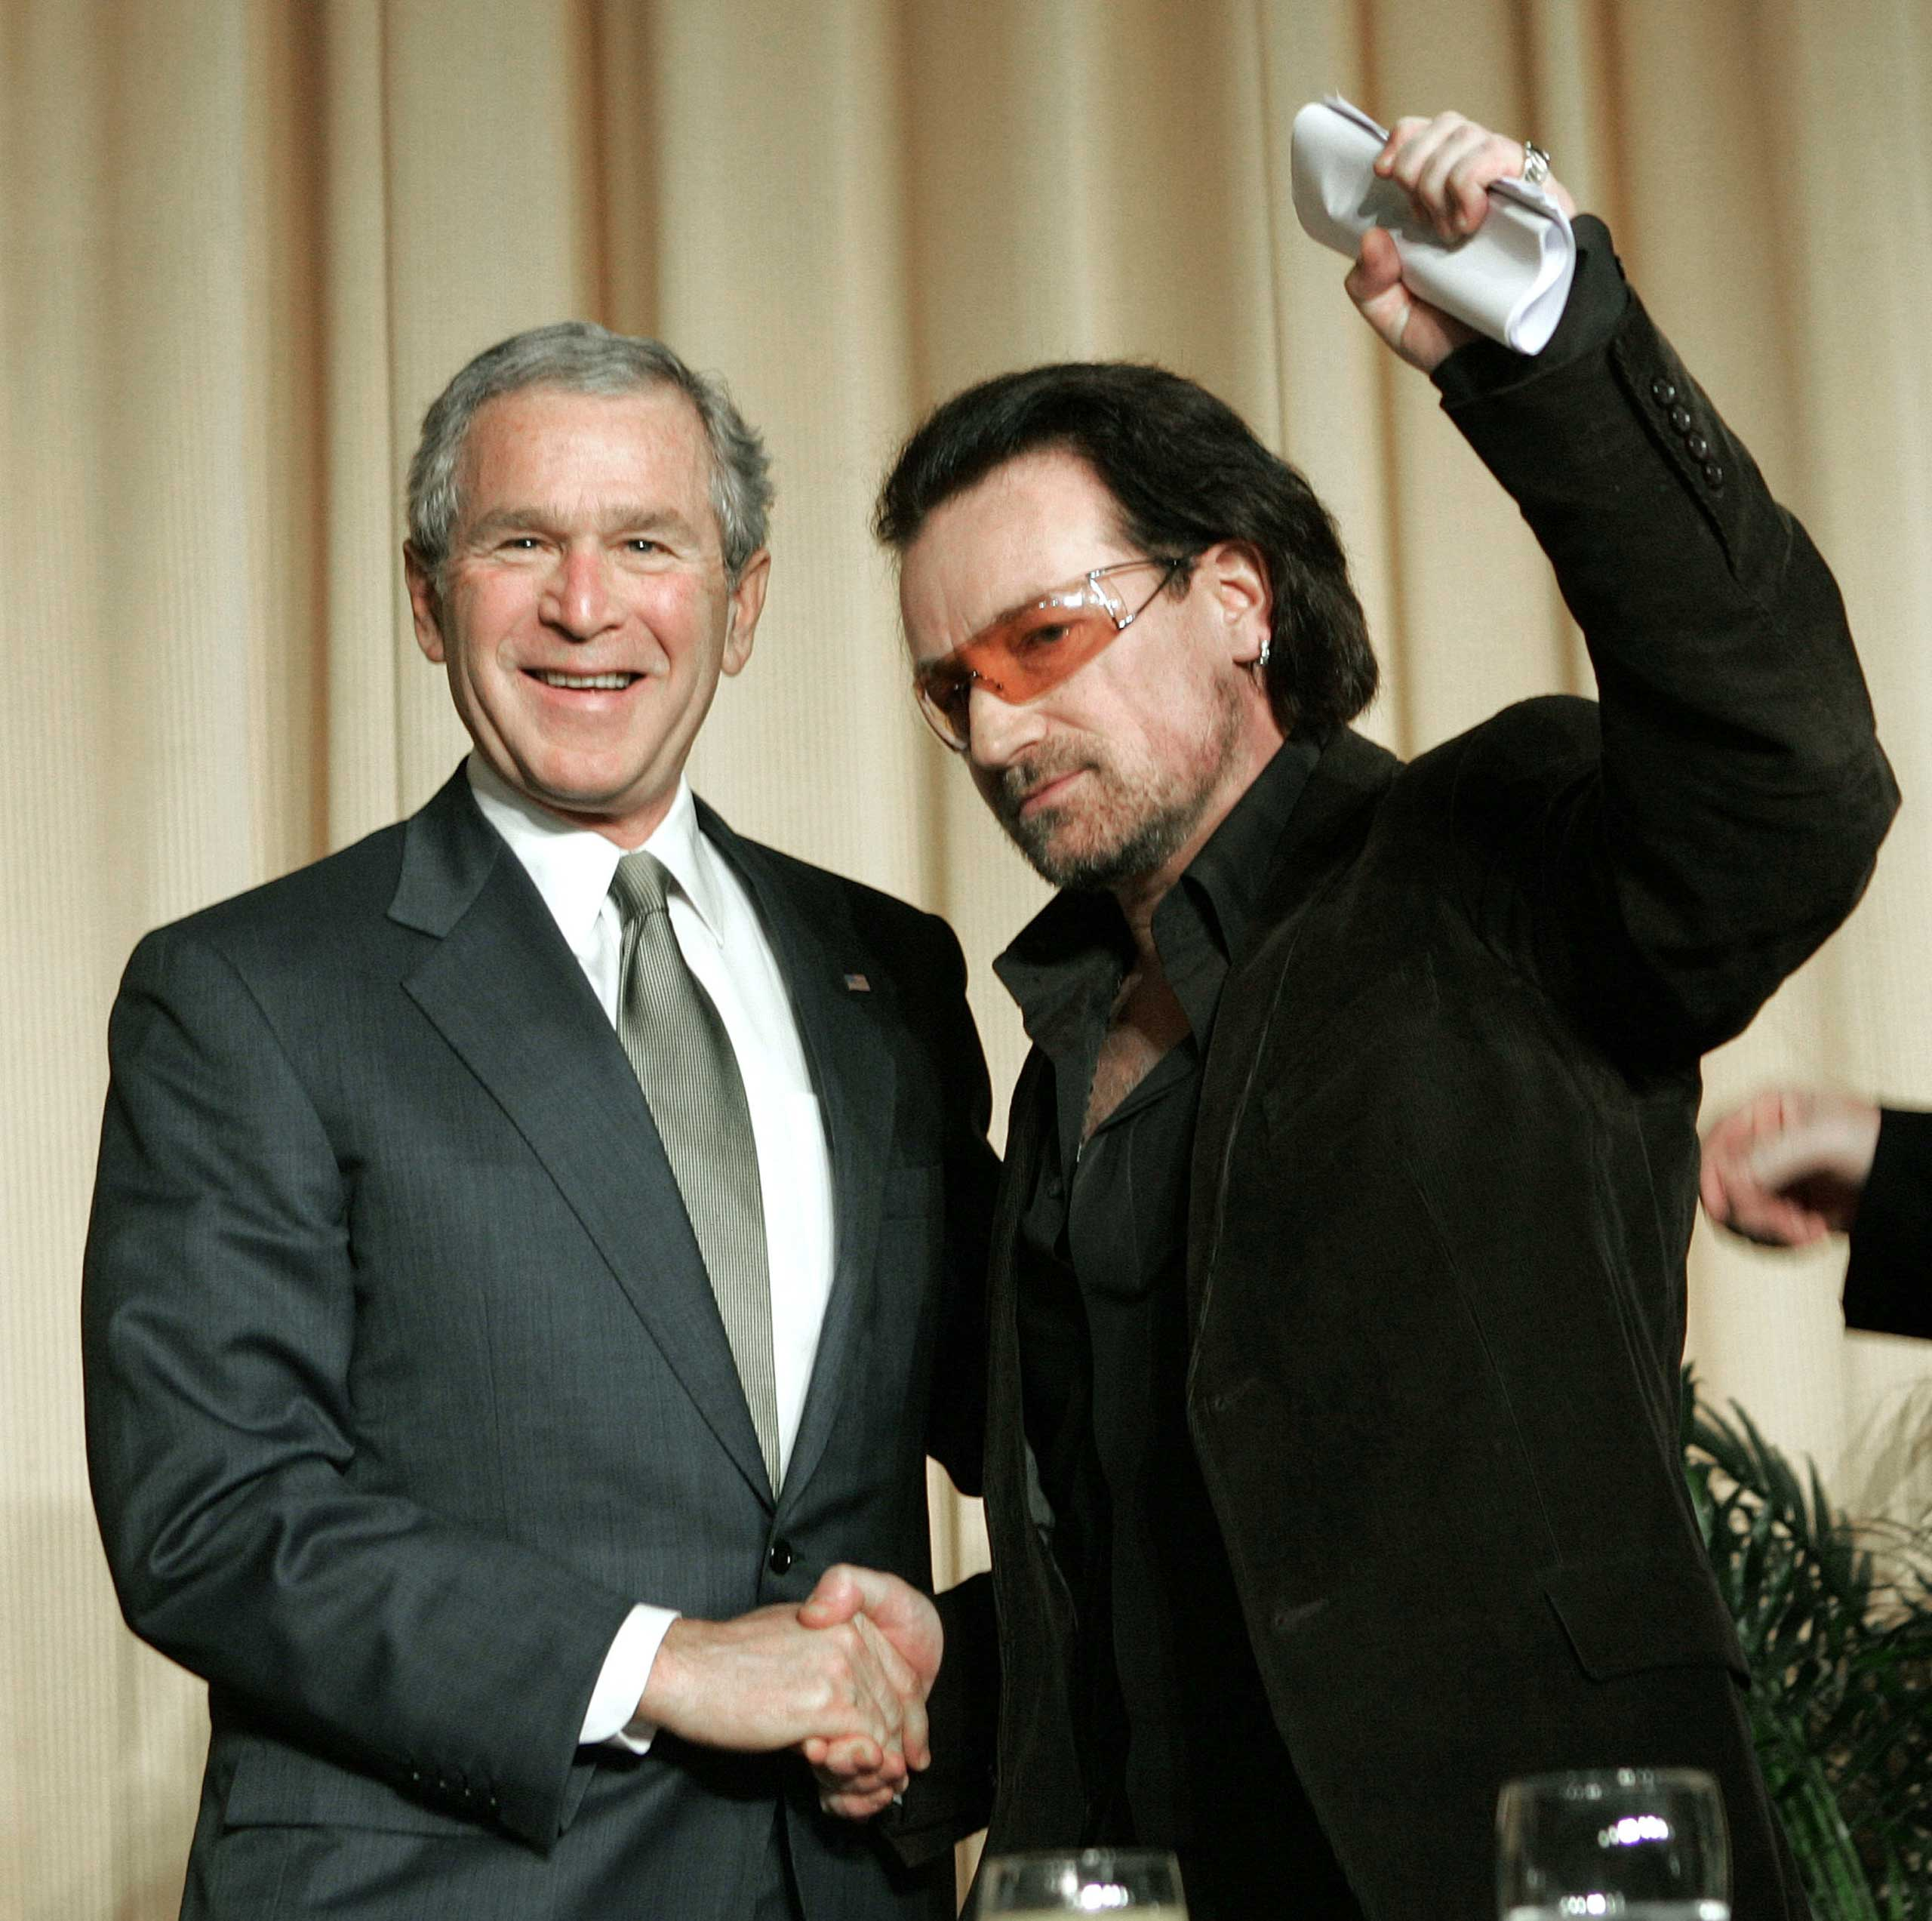 President George W. Bush shakes hands with U2 frontman Bono, who spoke at the 2006 National Prayer Breakfast.